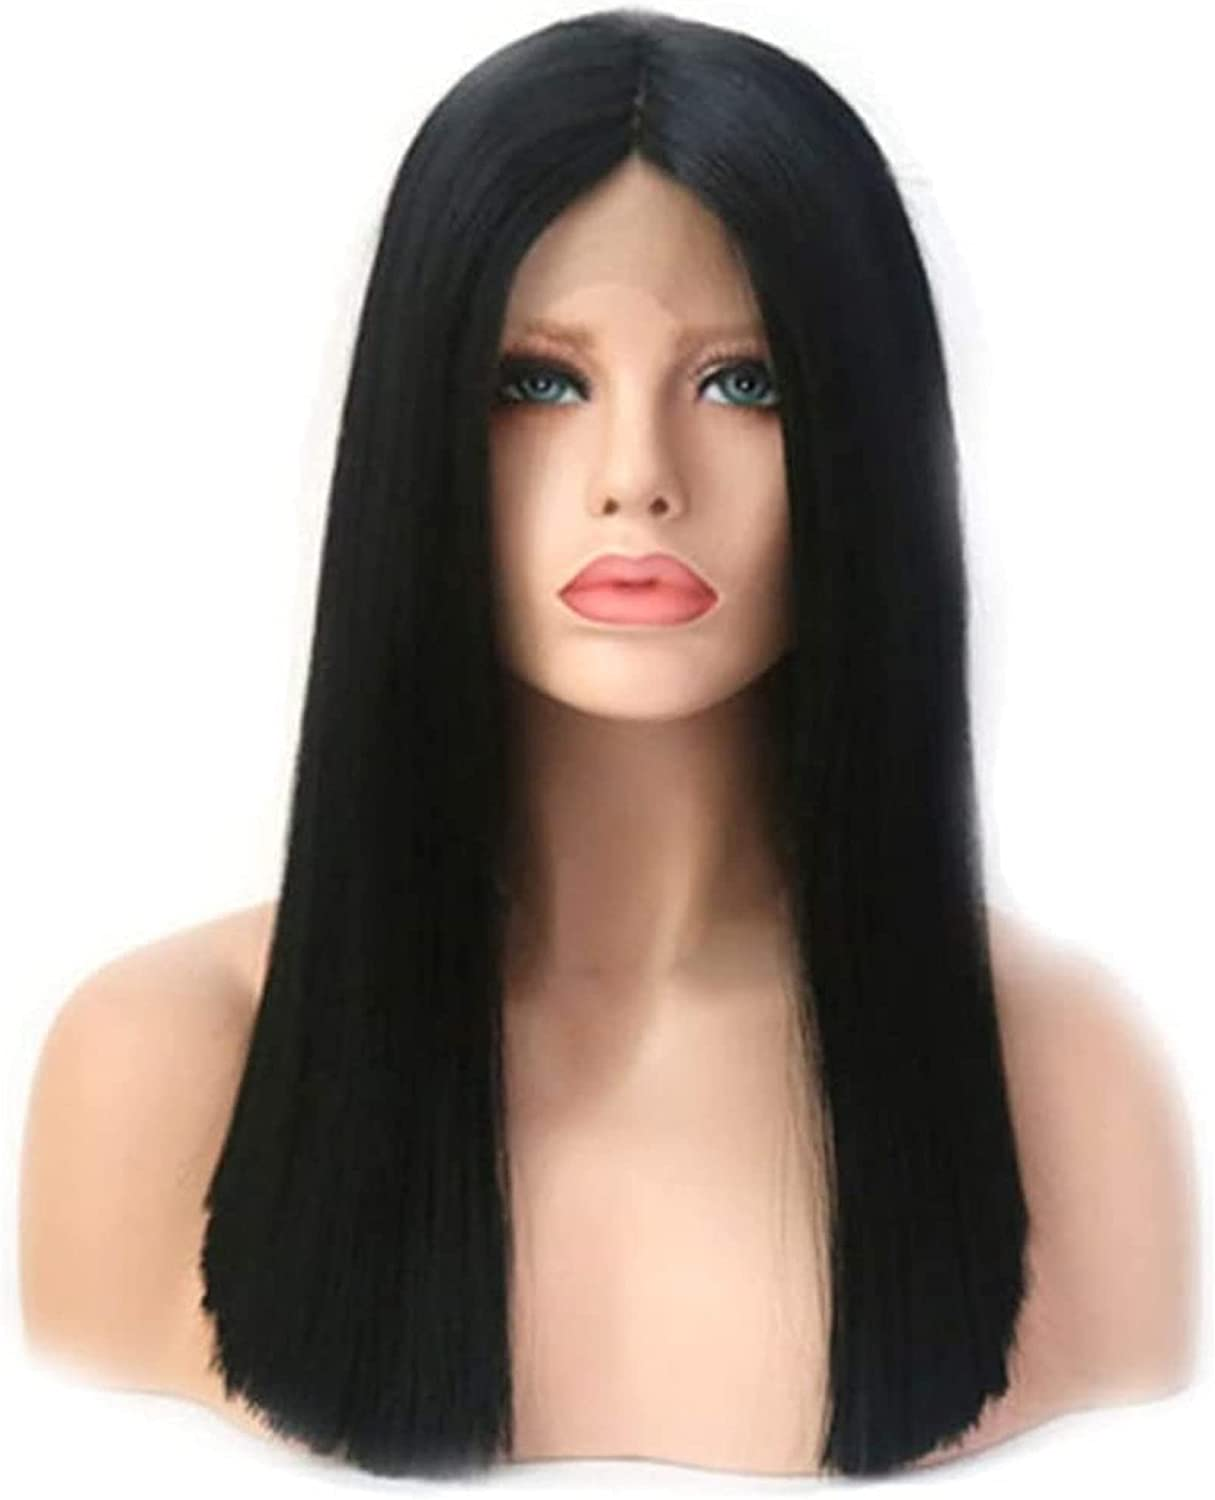 HTDYLHH Beautiful Wigs Europe Direct store and Popular product The States United Straig Long